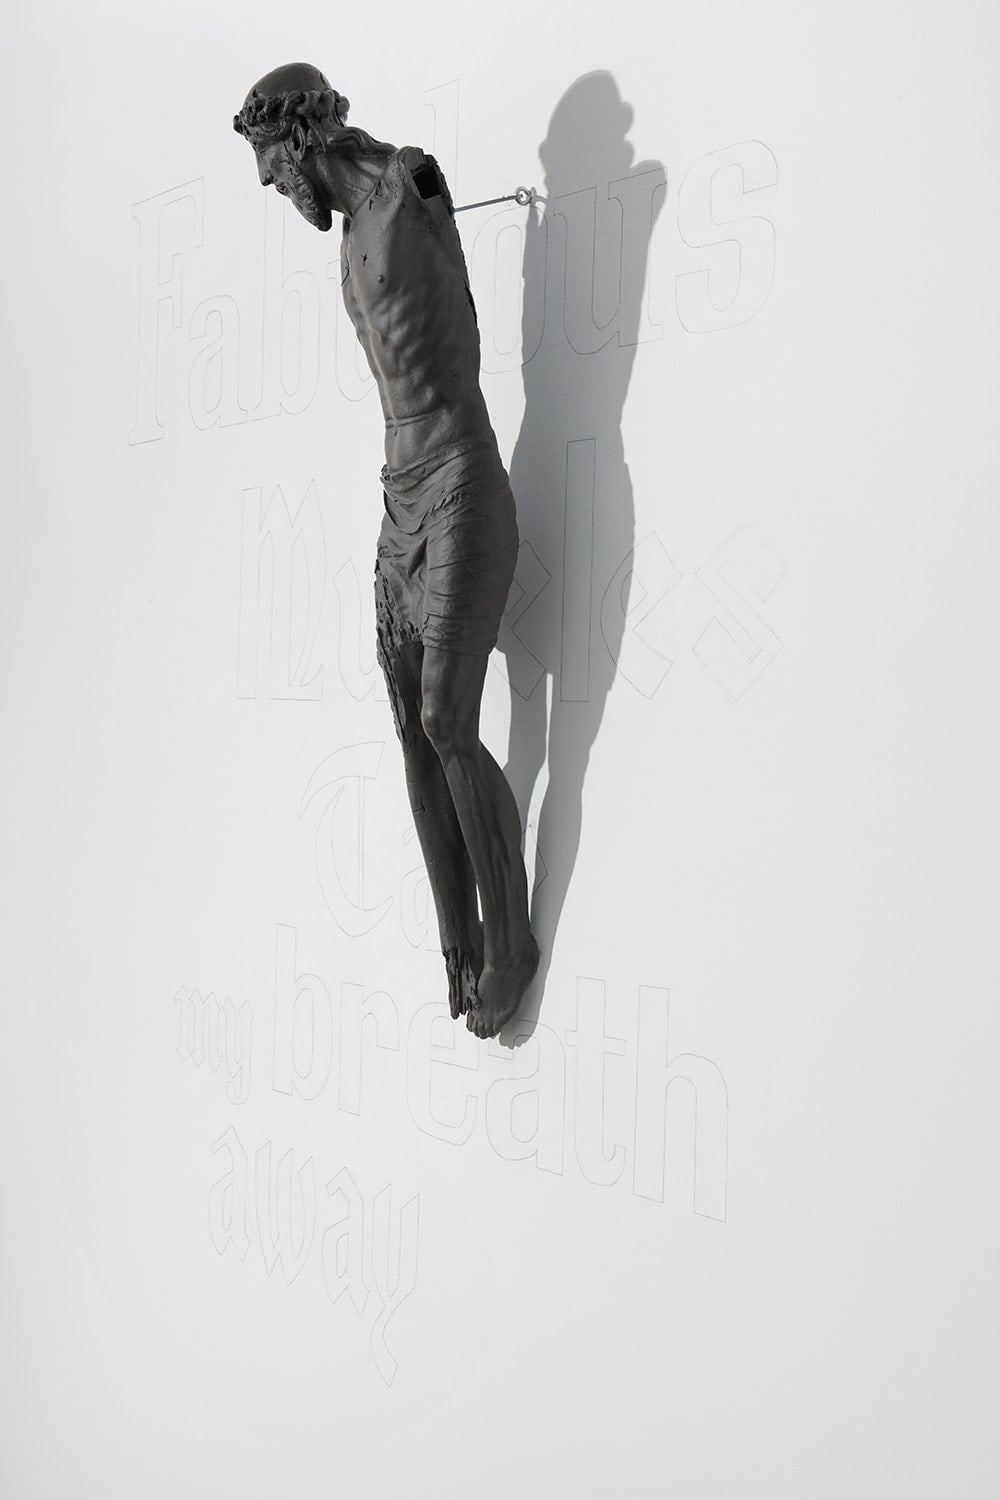 Installation view of a sculpture depicting Jesus crucified, suspended off a gallery wall featuring large faint text.